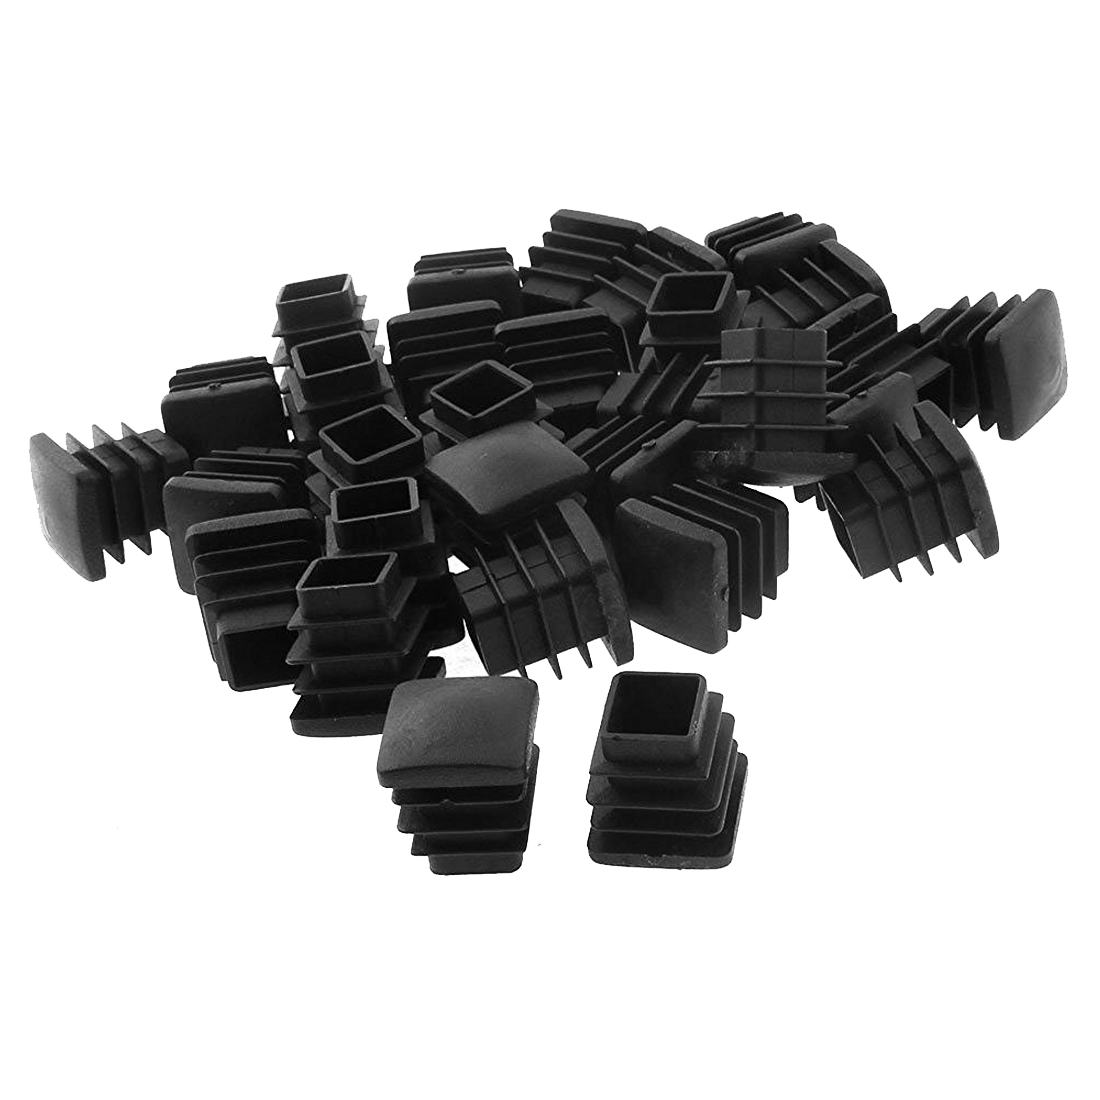 Promotion! Square Table Chair Leg Feet Tube Pipe Insert Cap 30pcs BlackPromotion! Square Table Chair Leg Feet Tube Pipe Insert Cap 30pcs Black